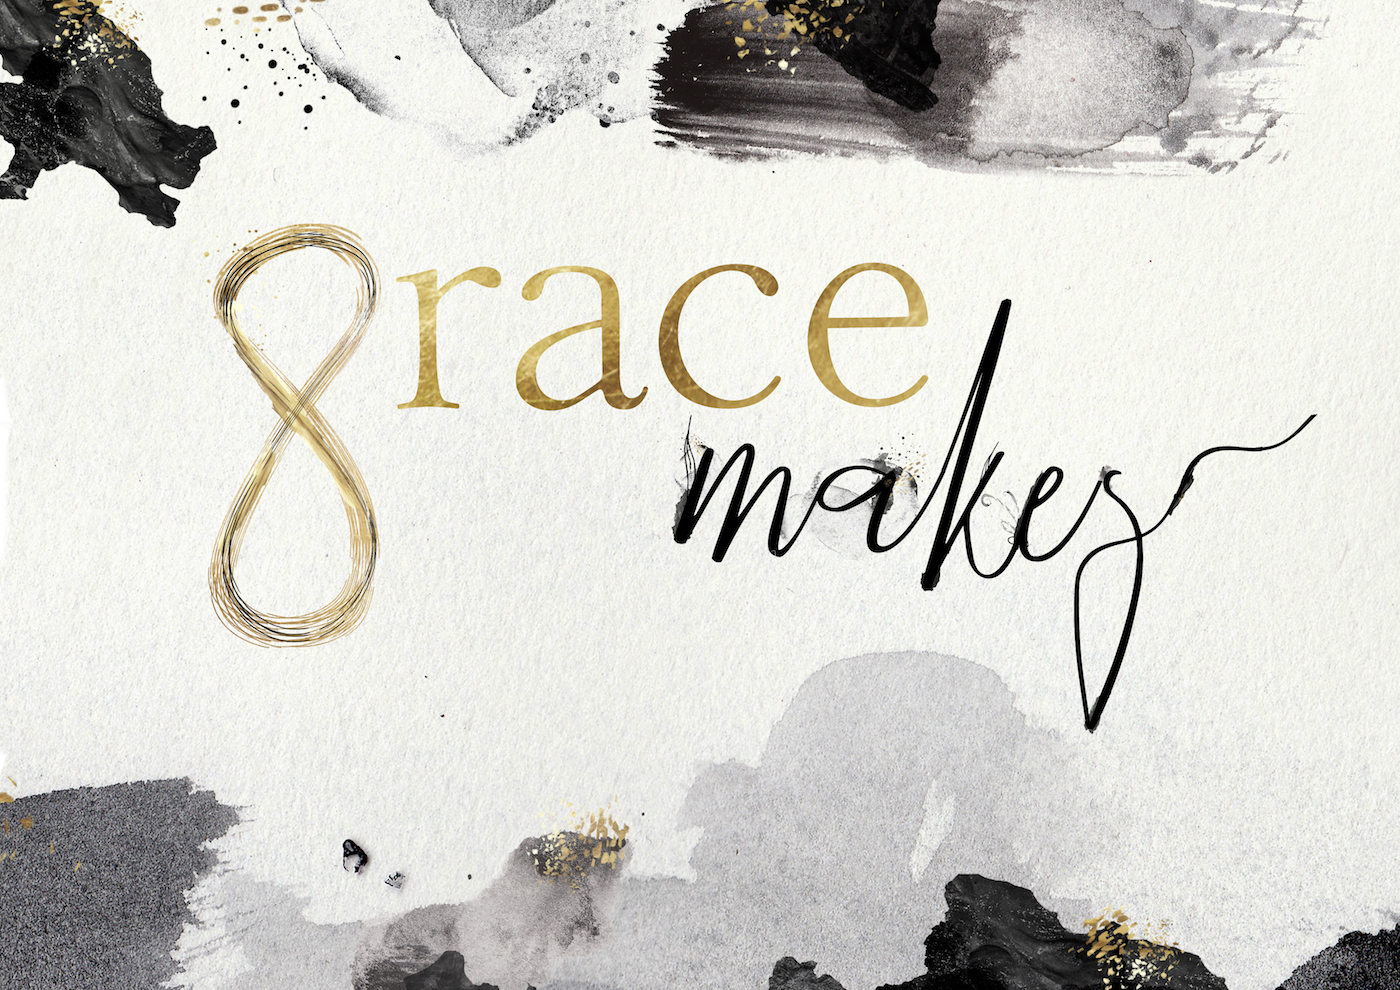 Check Out Our Current Sermon Series